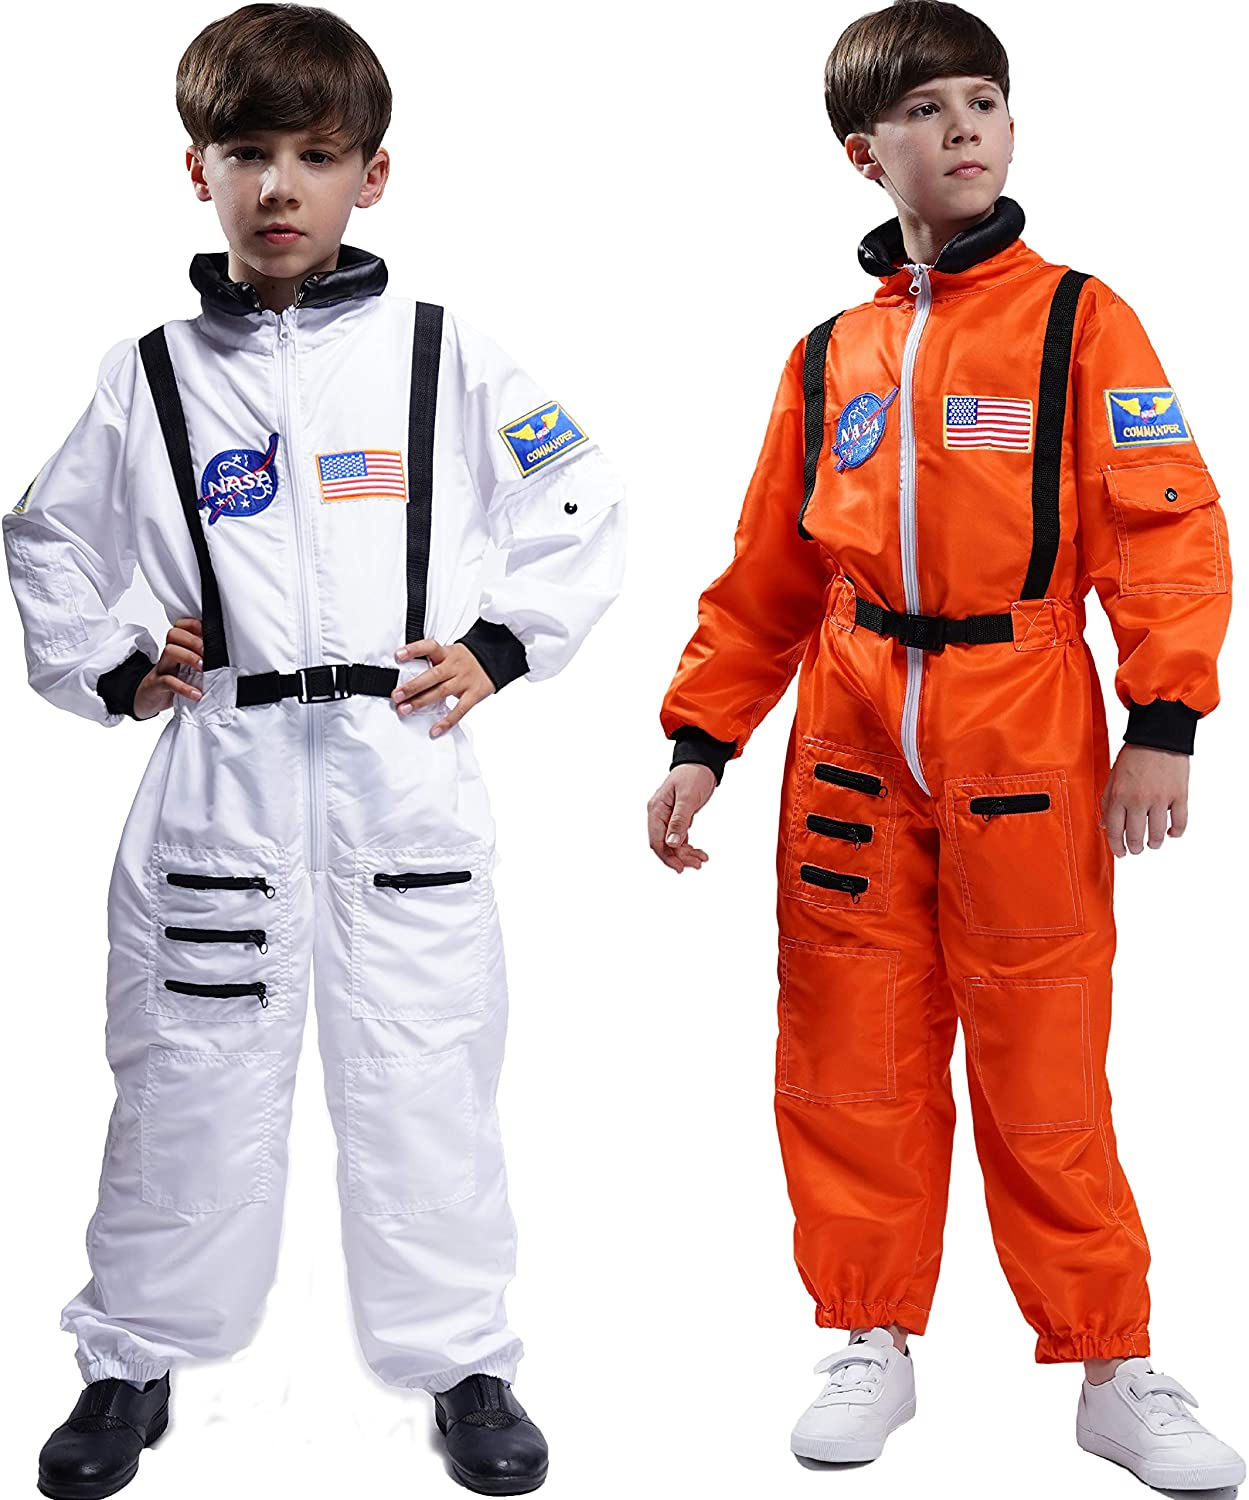 Maxim Party Supplies Kids Astronaut Costume Space Suit Onesie with Embroidered Patches and Pockets